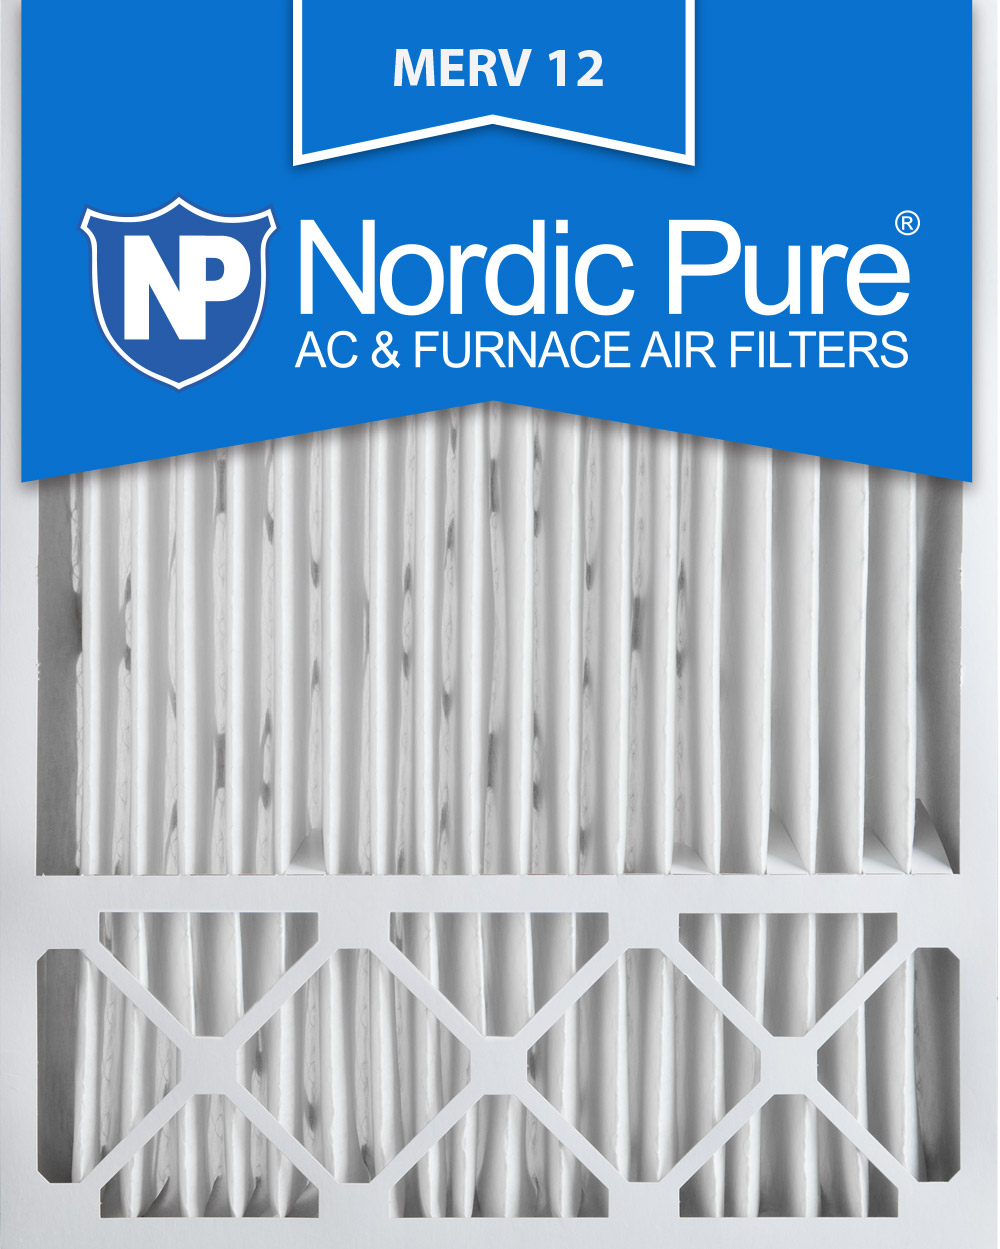 Nordic Pure 10x25x1CustomM7+C-6 MERV 7 Carbon AC Furnace Filters 6 Piece